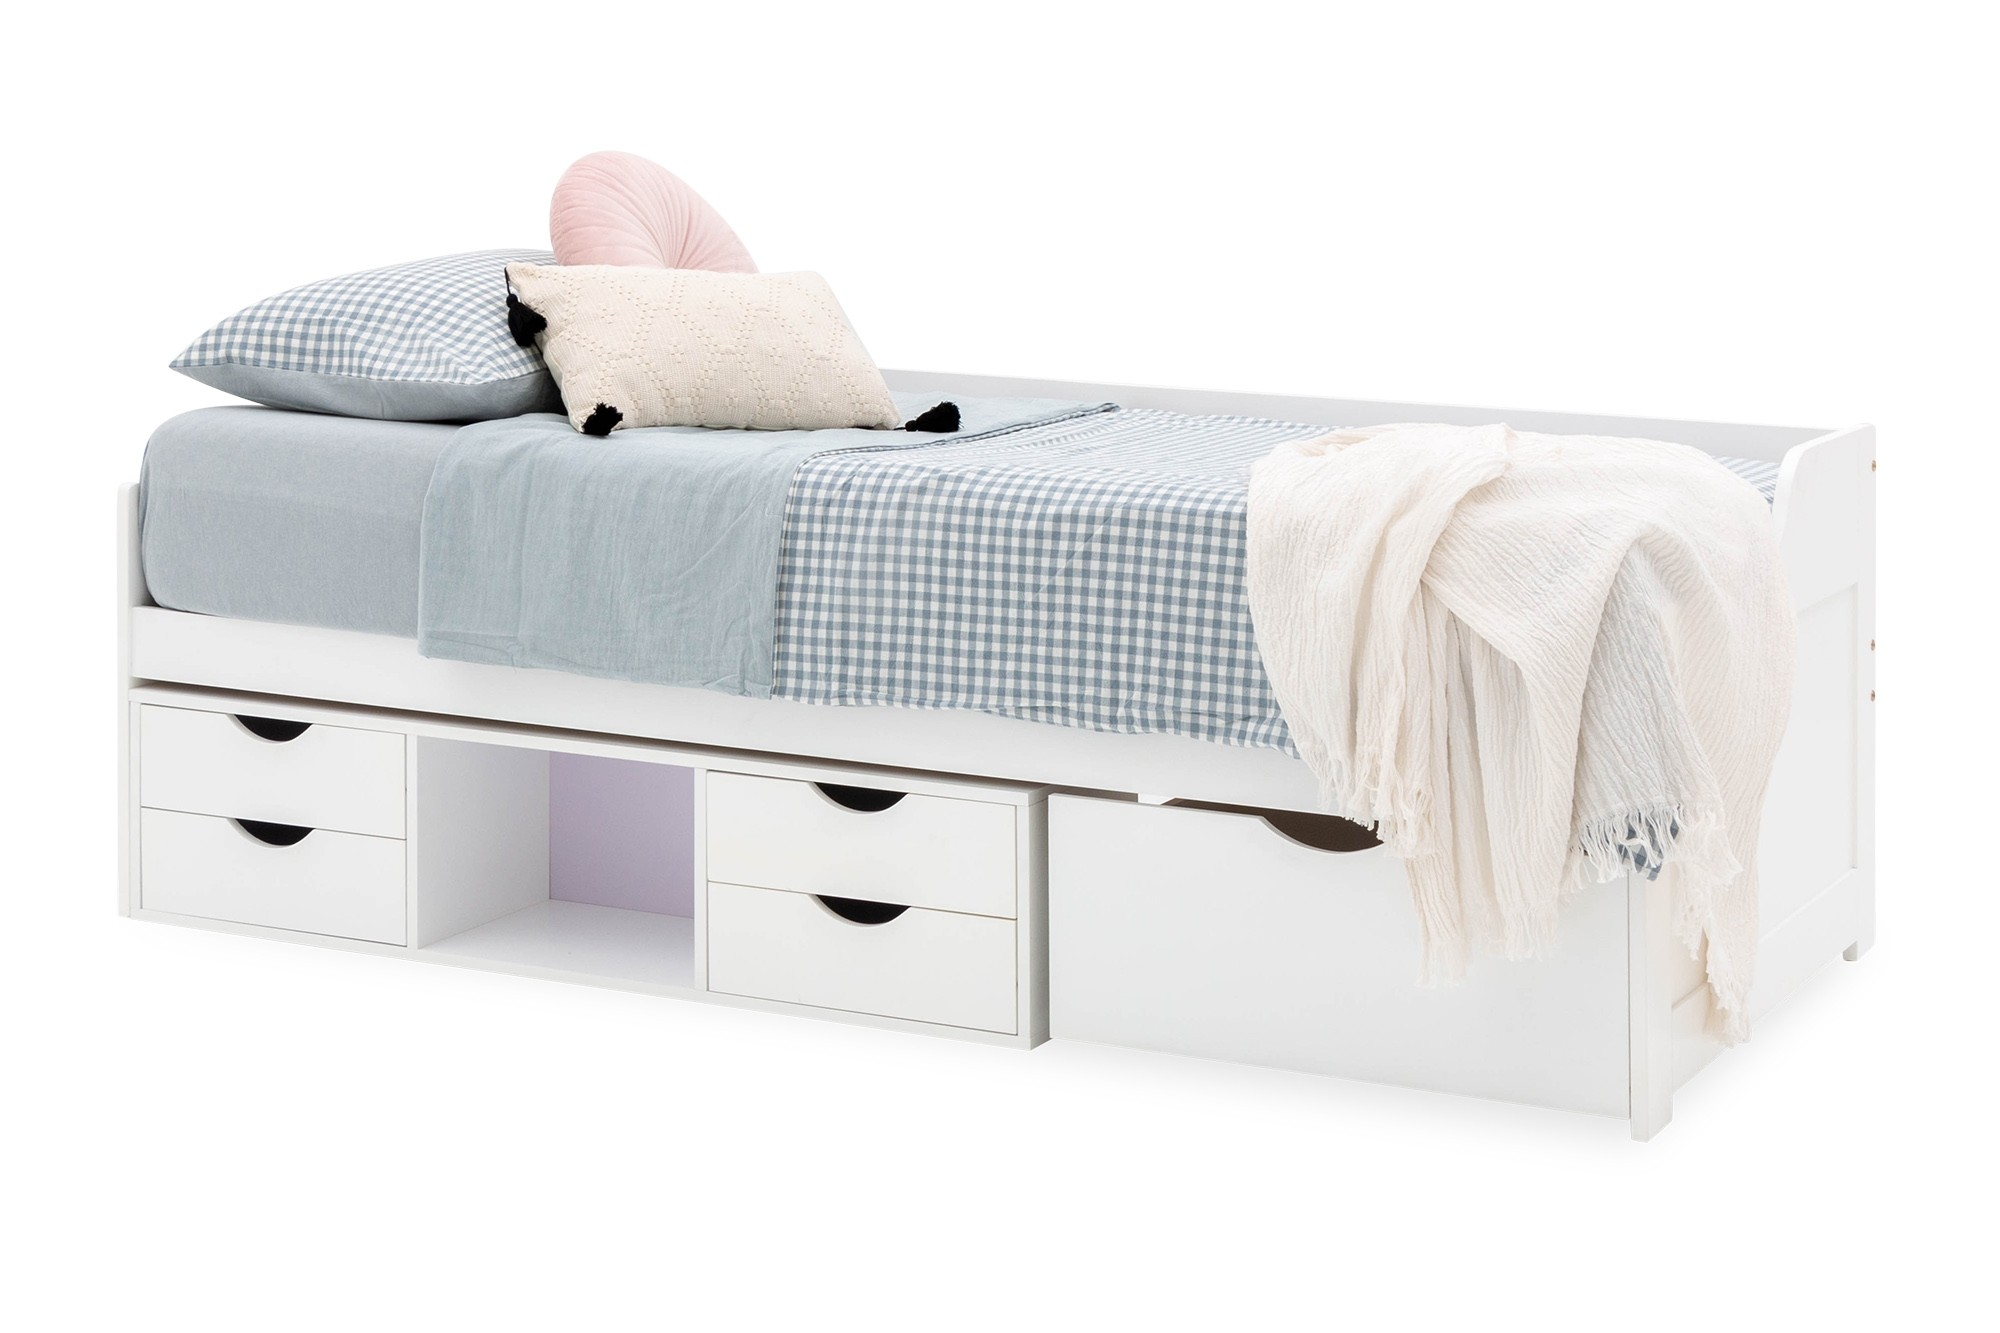 Alabaster Single Day Bed With Drawers White Furniture Home Decor Fortytwo